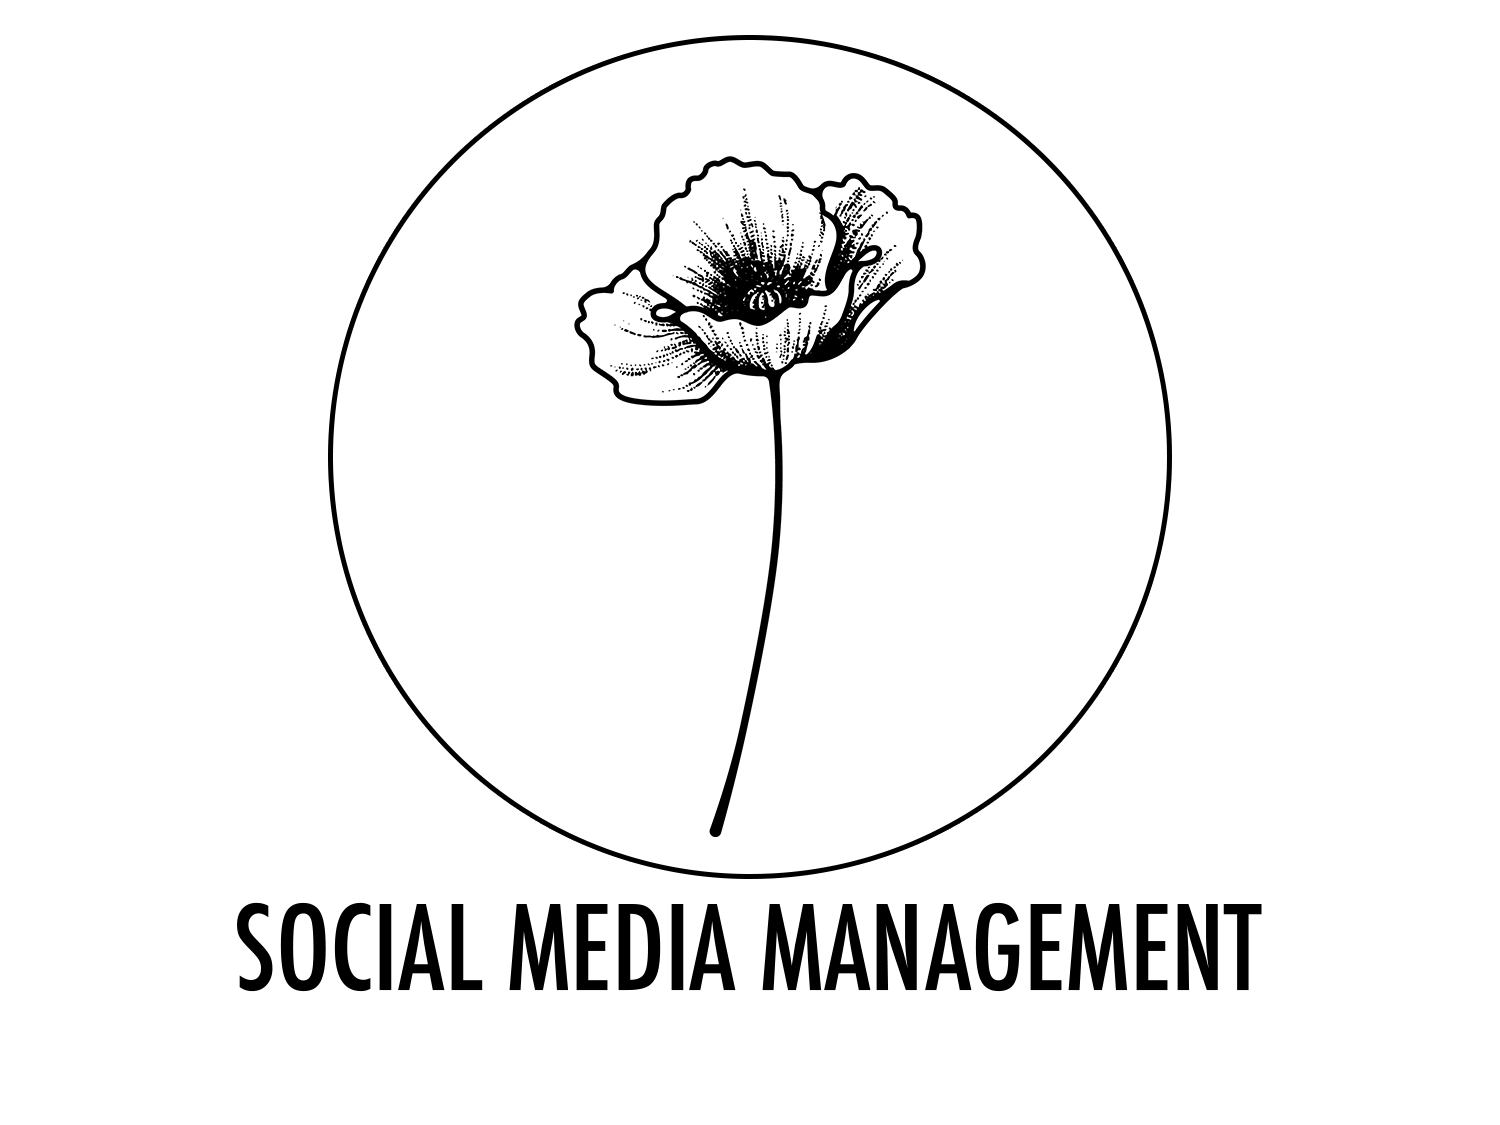 How's that engagement? - Followers are only cool if they help your company or organization. Let's talk about that.